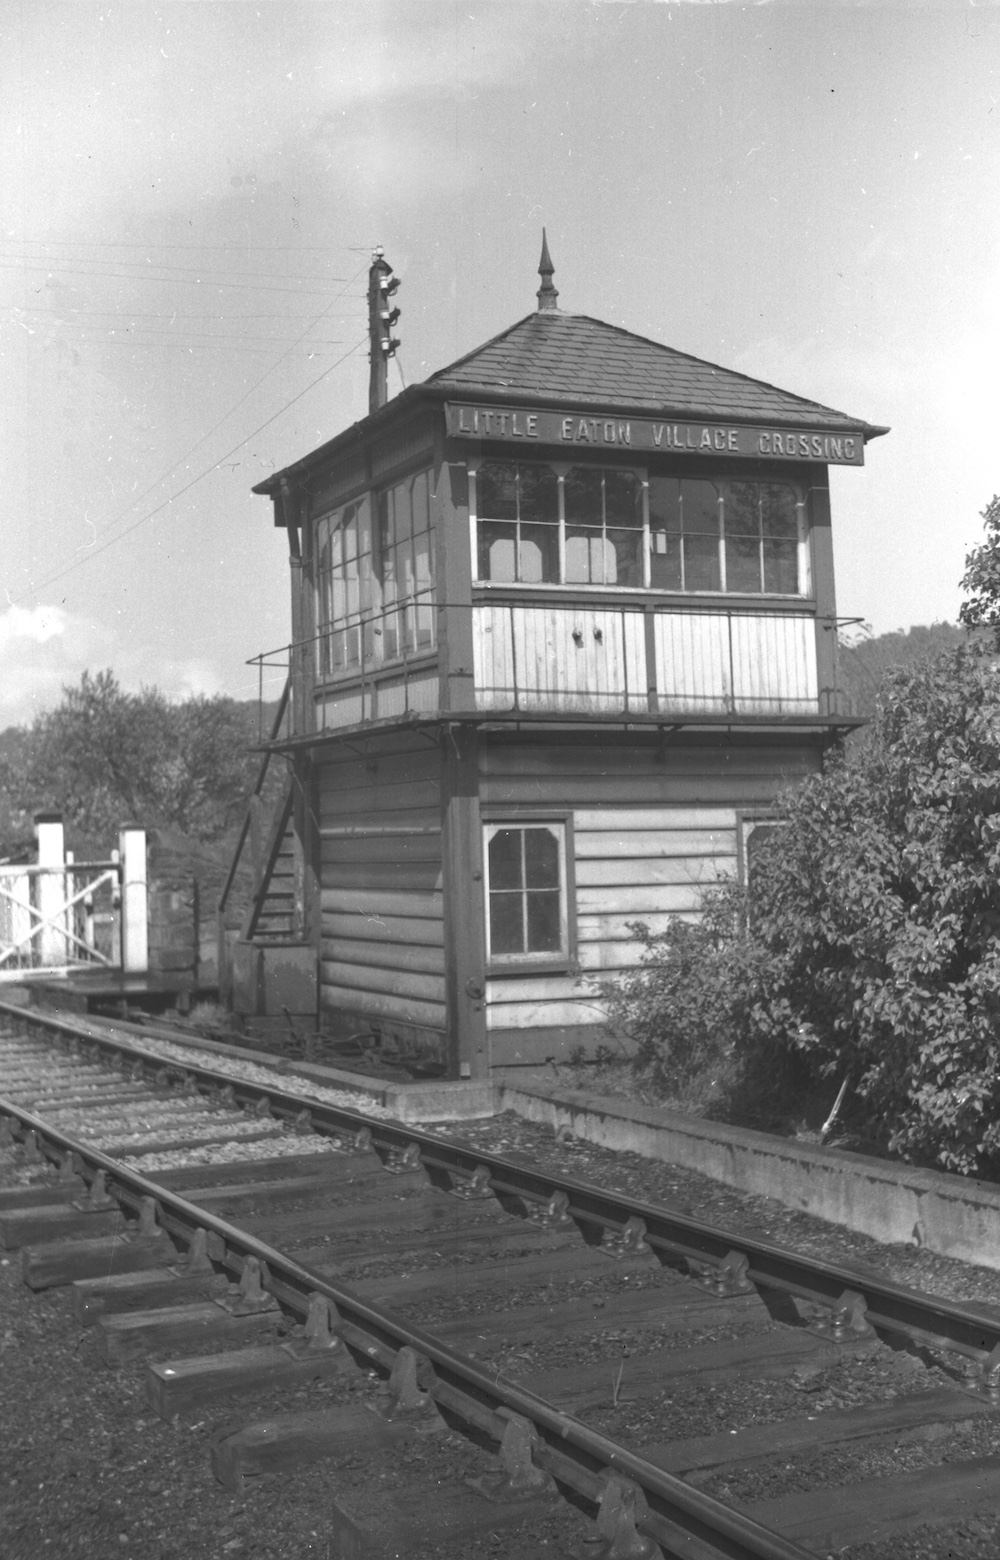 Little Eaton Village Crossing signal box viewed from the track at the north end about 1965 by Pat Larkam - MRSC collection